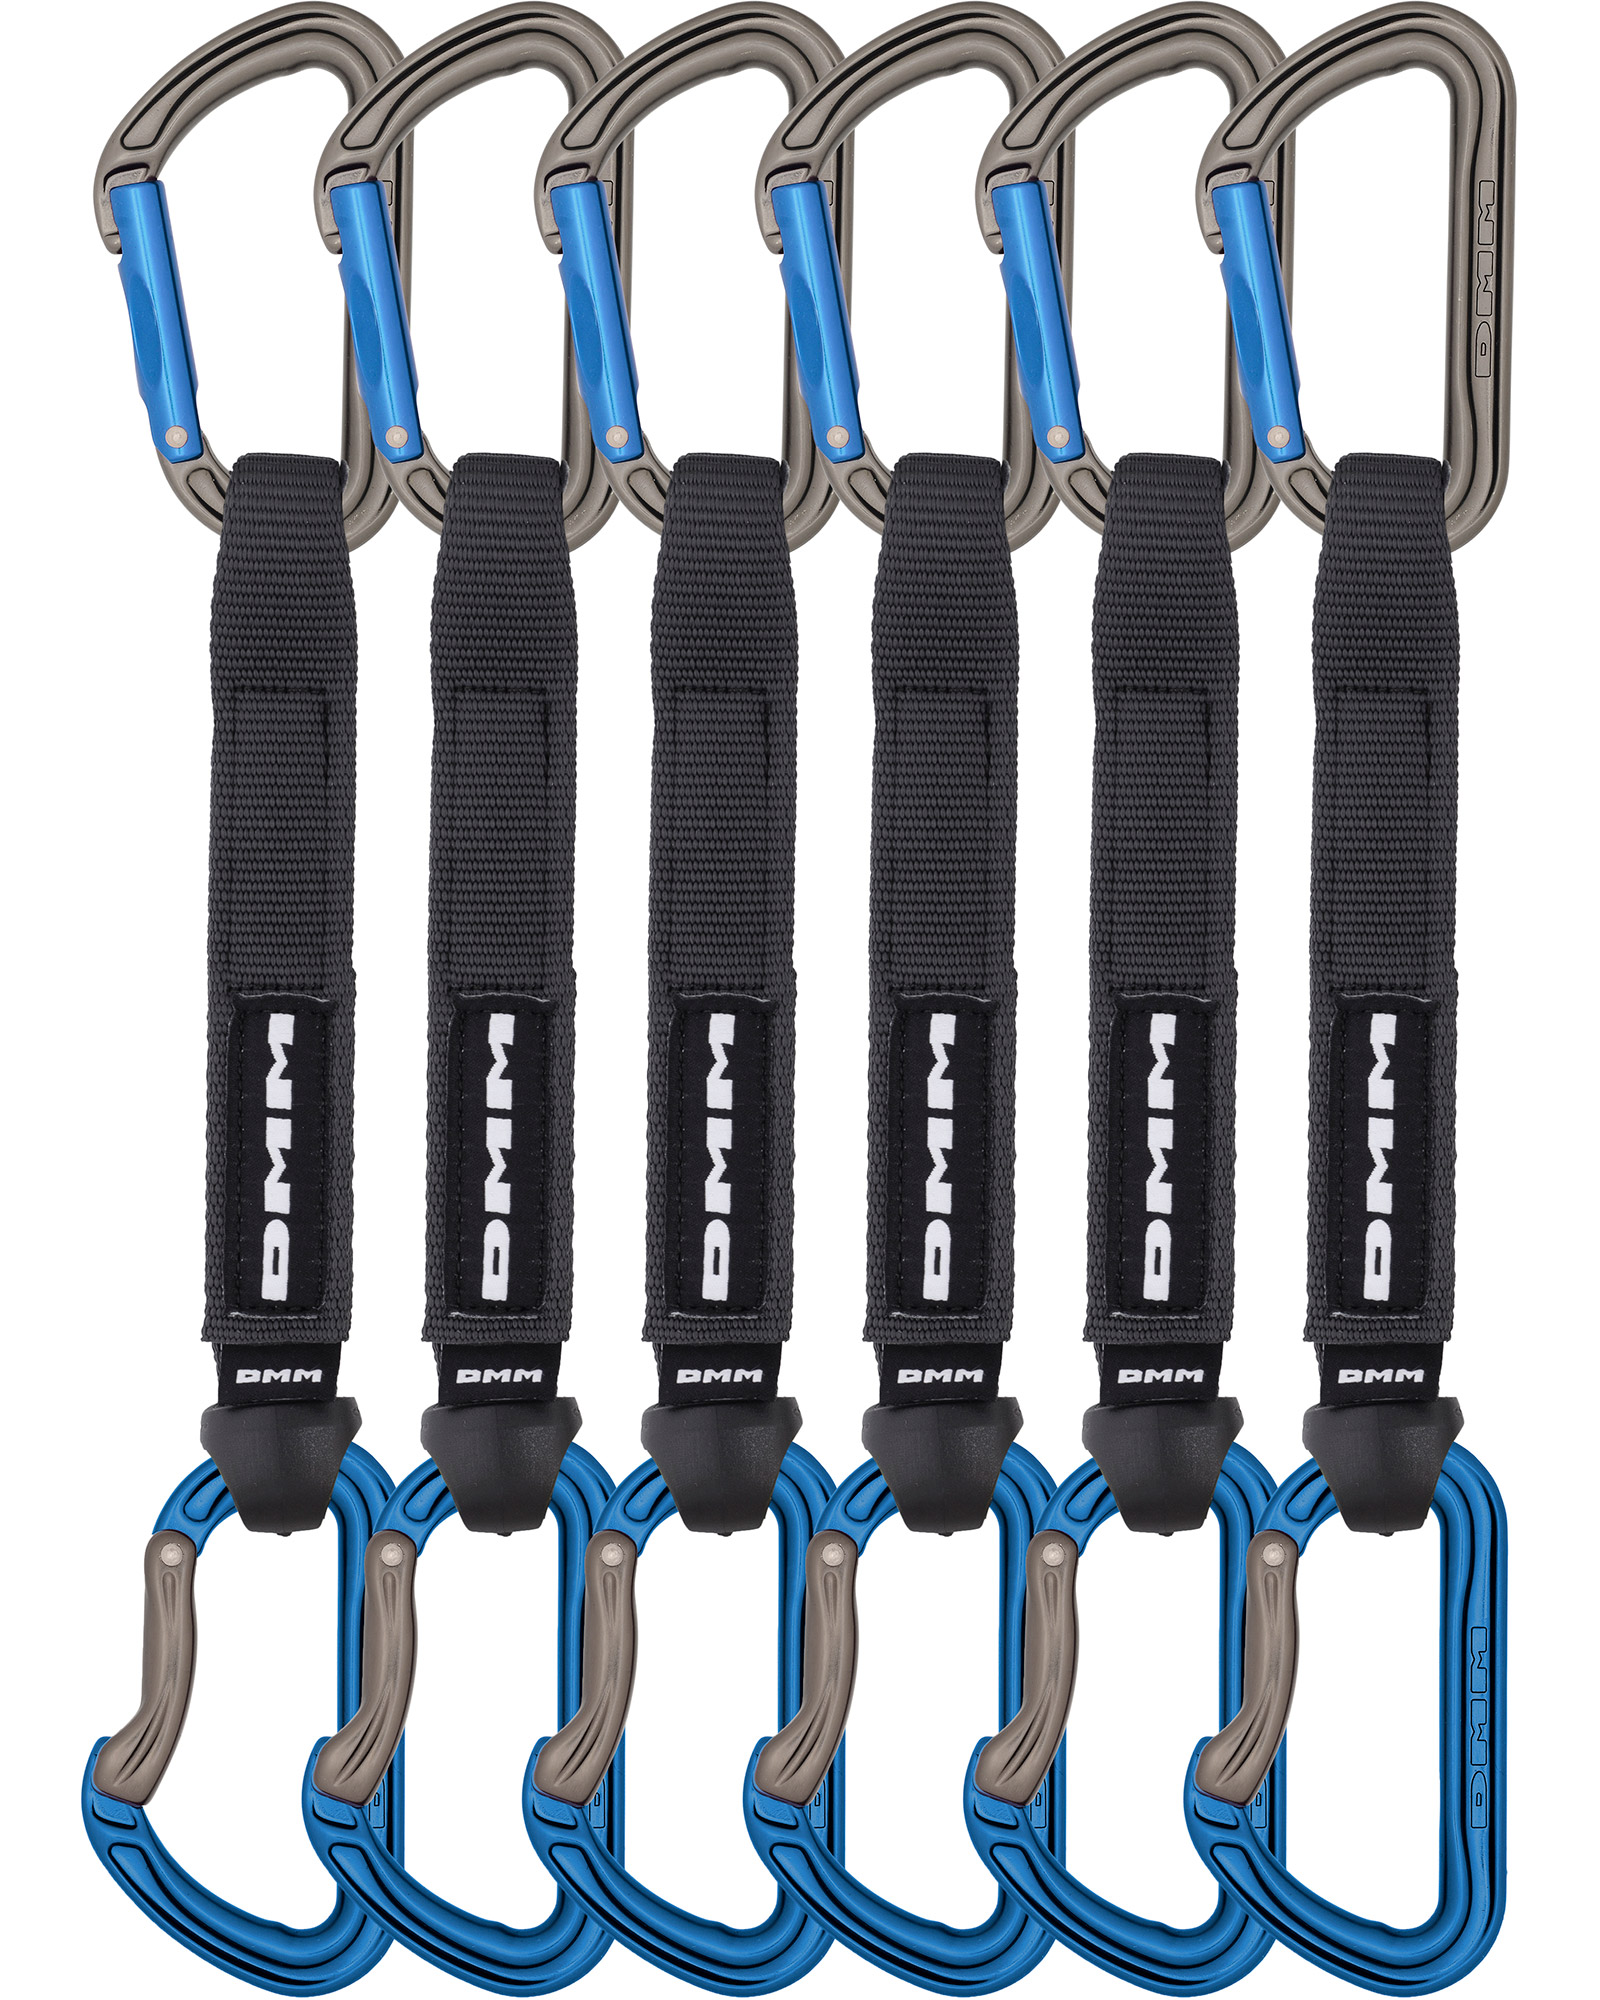 DMM Shadow Quickdraw 18cm - 6 Pack 0